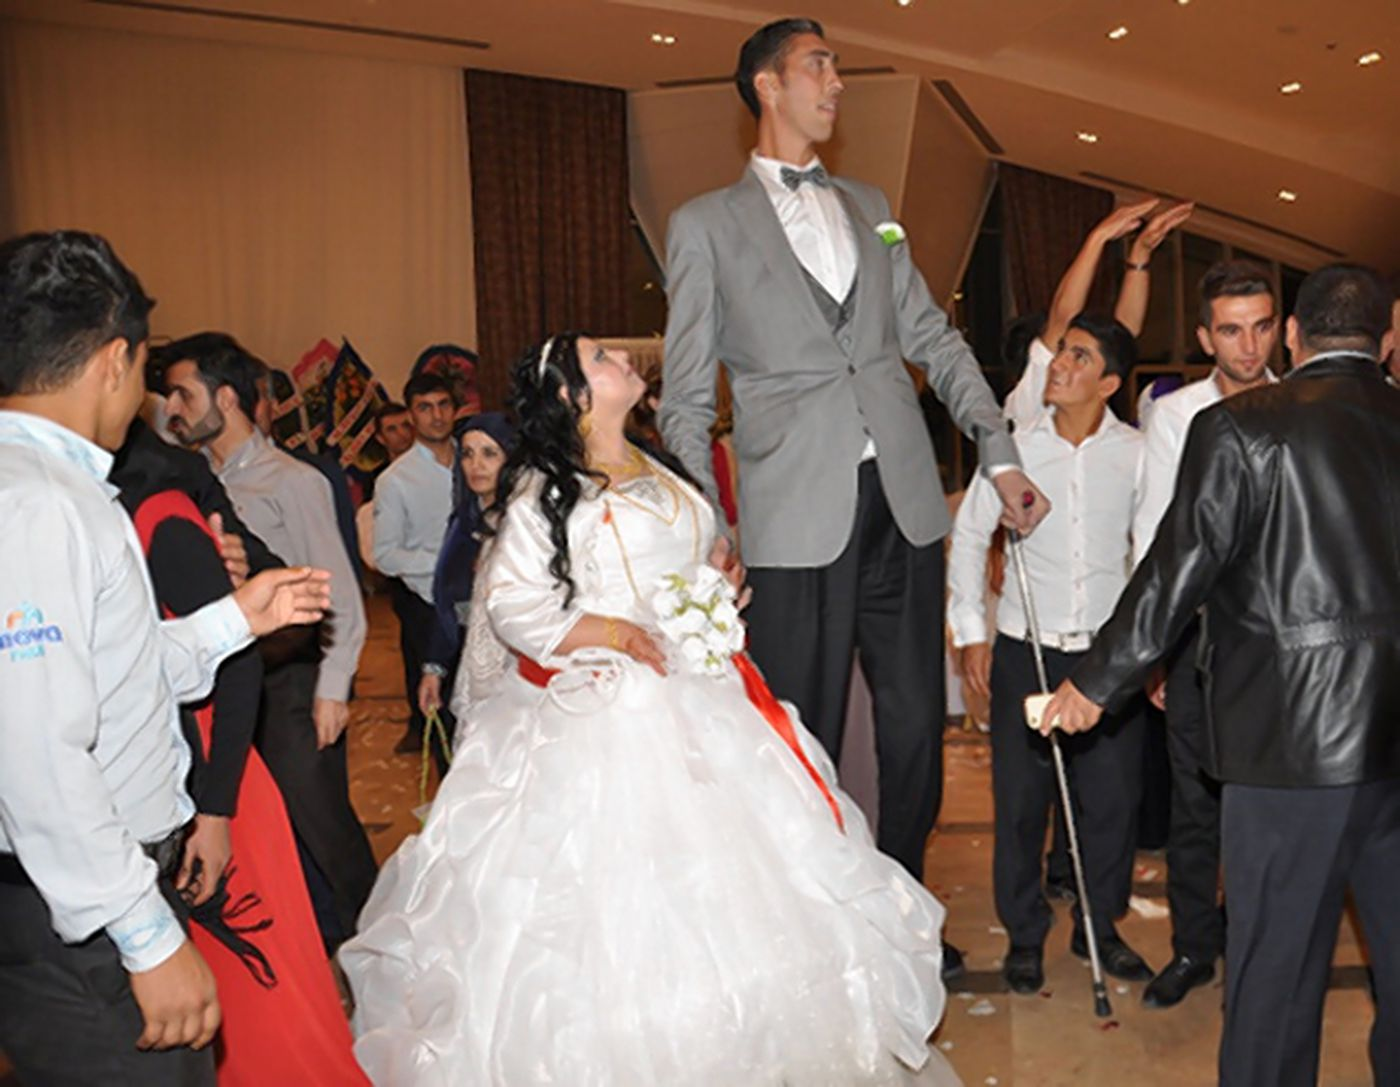 World's tallest man gets married to woman who is 2 feet. 7 inches shorter - NY Daily News